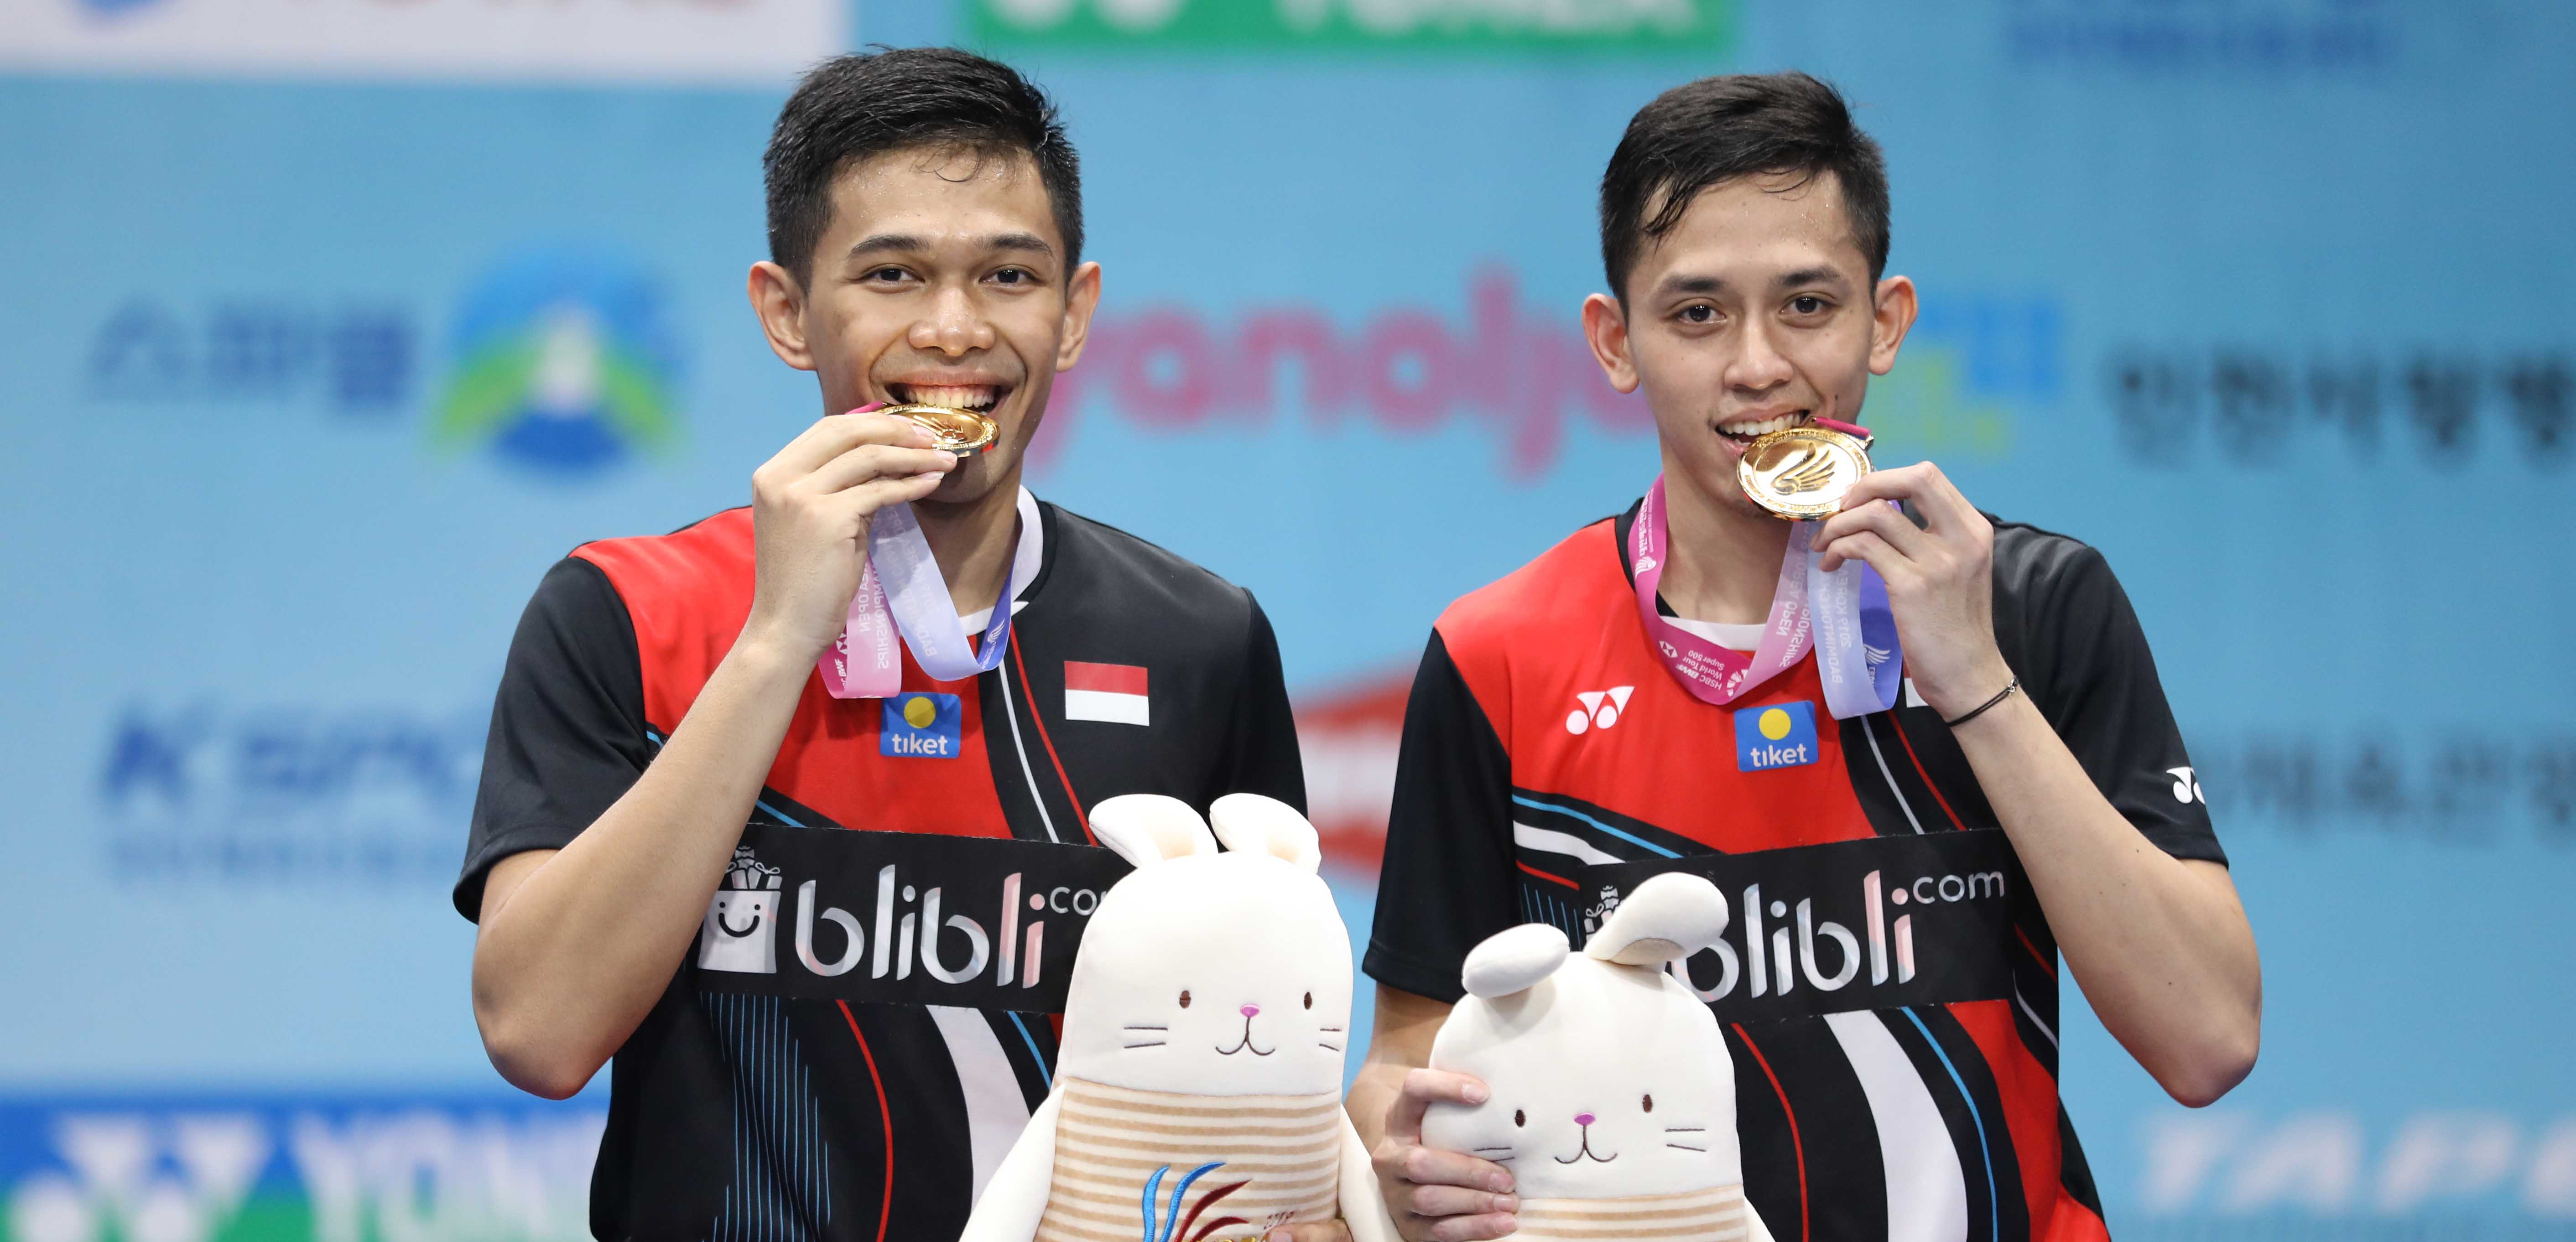 Indonesia Bawa Gelar Juara Korea Open 2019